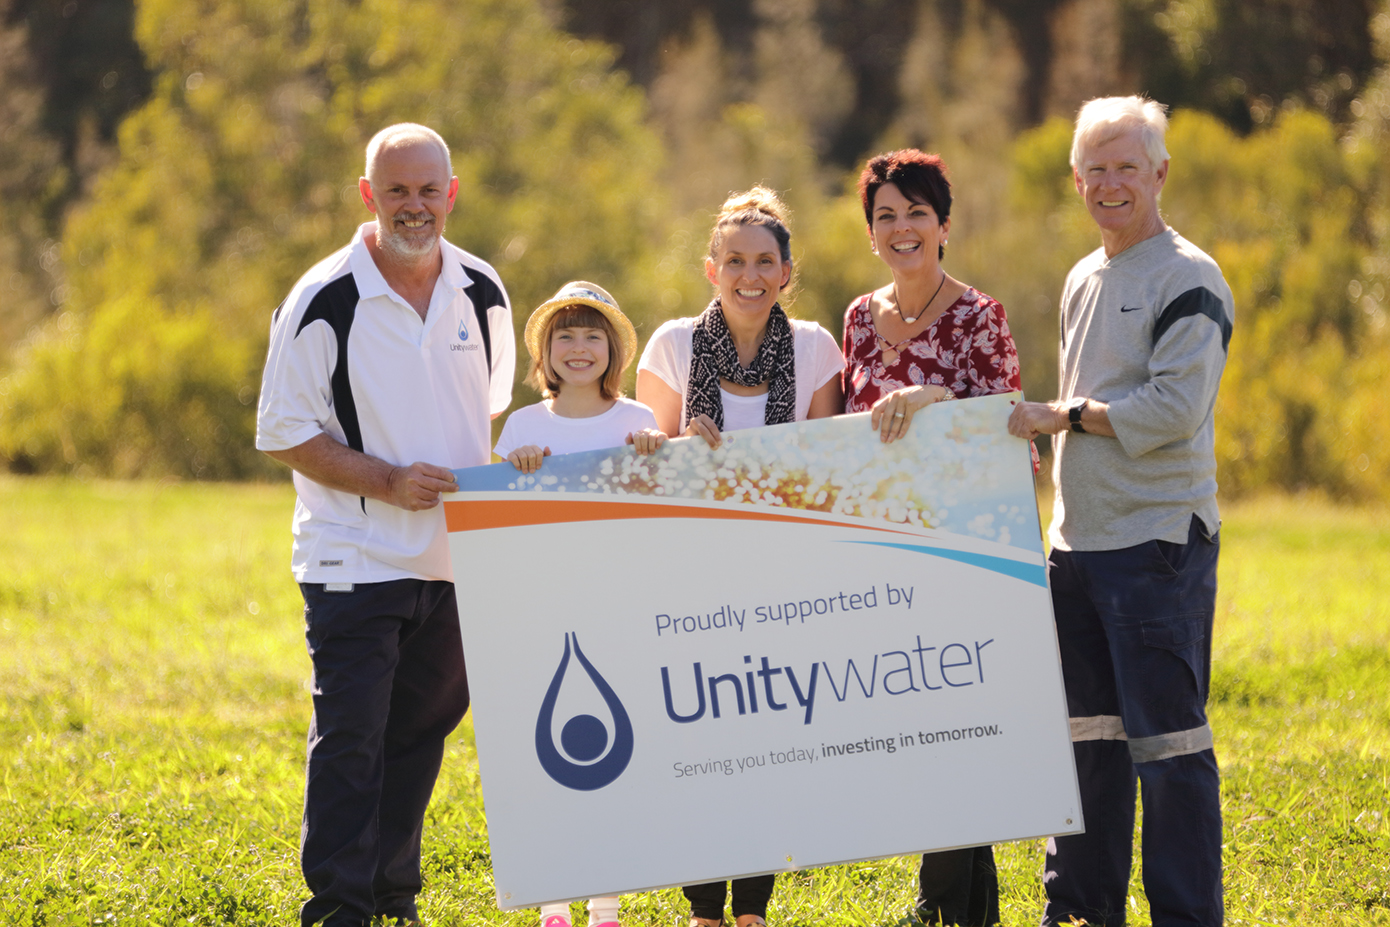 Group of people holding Unitywater sponsorship sign